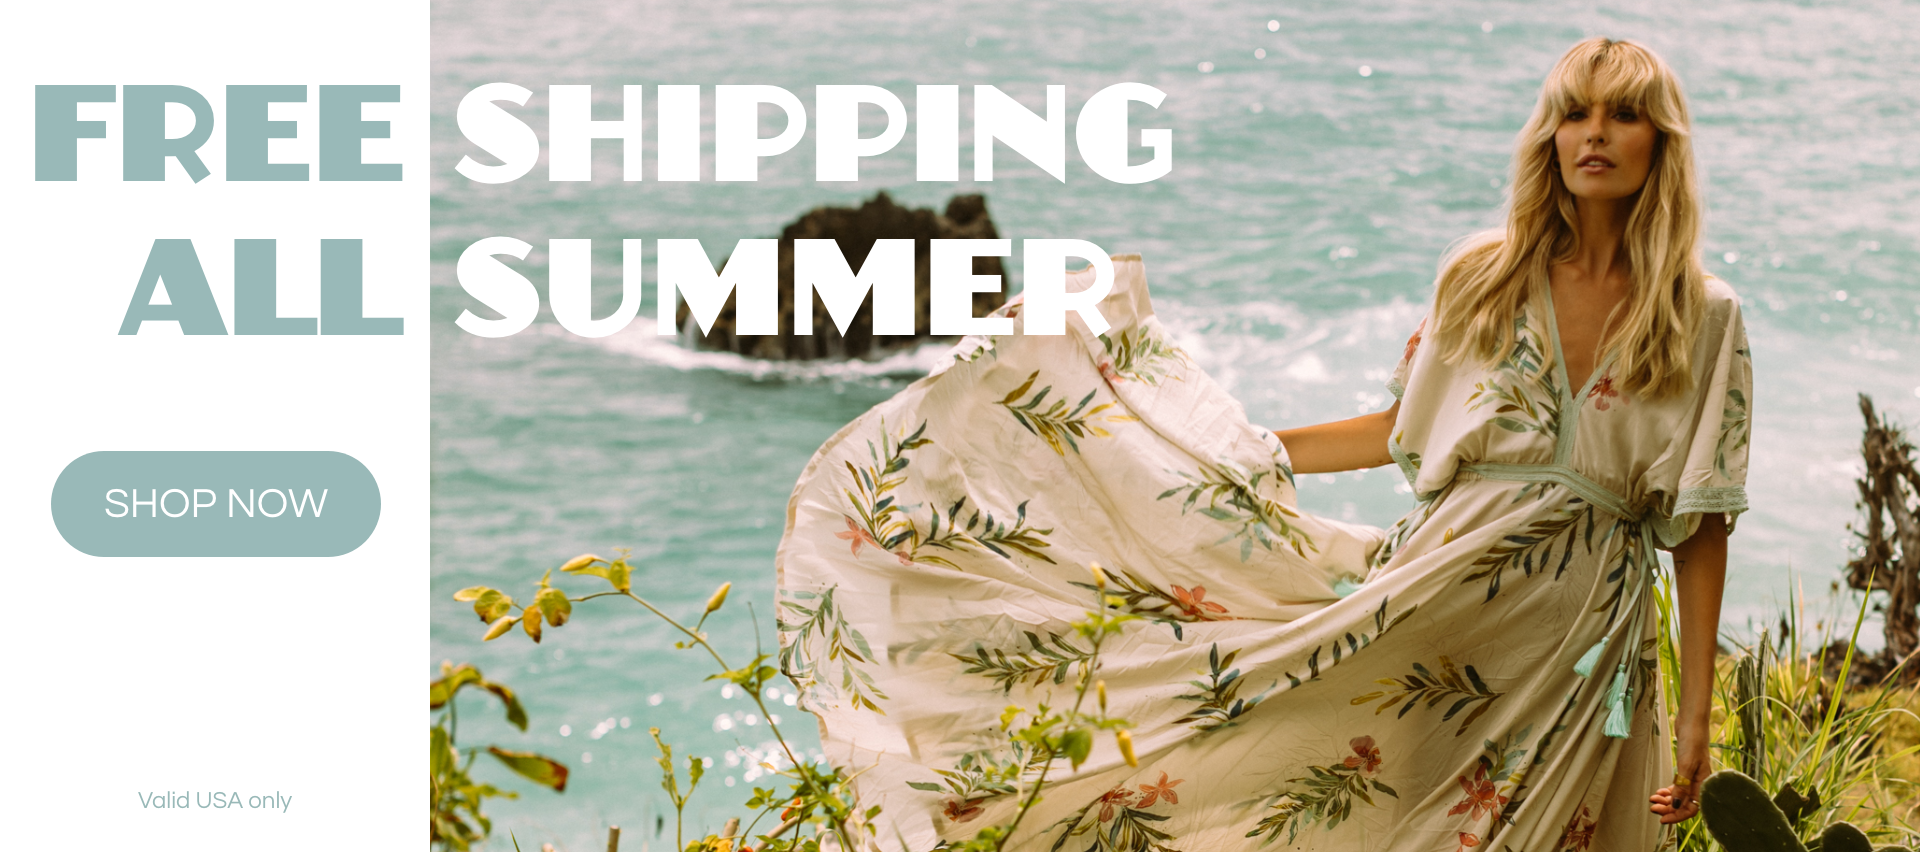 Cobalt & Tawny Free Shipping All Summer Long